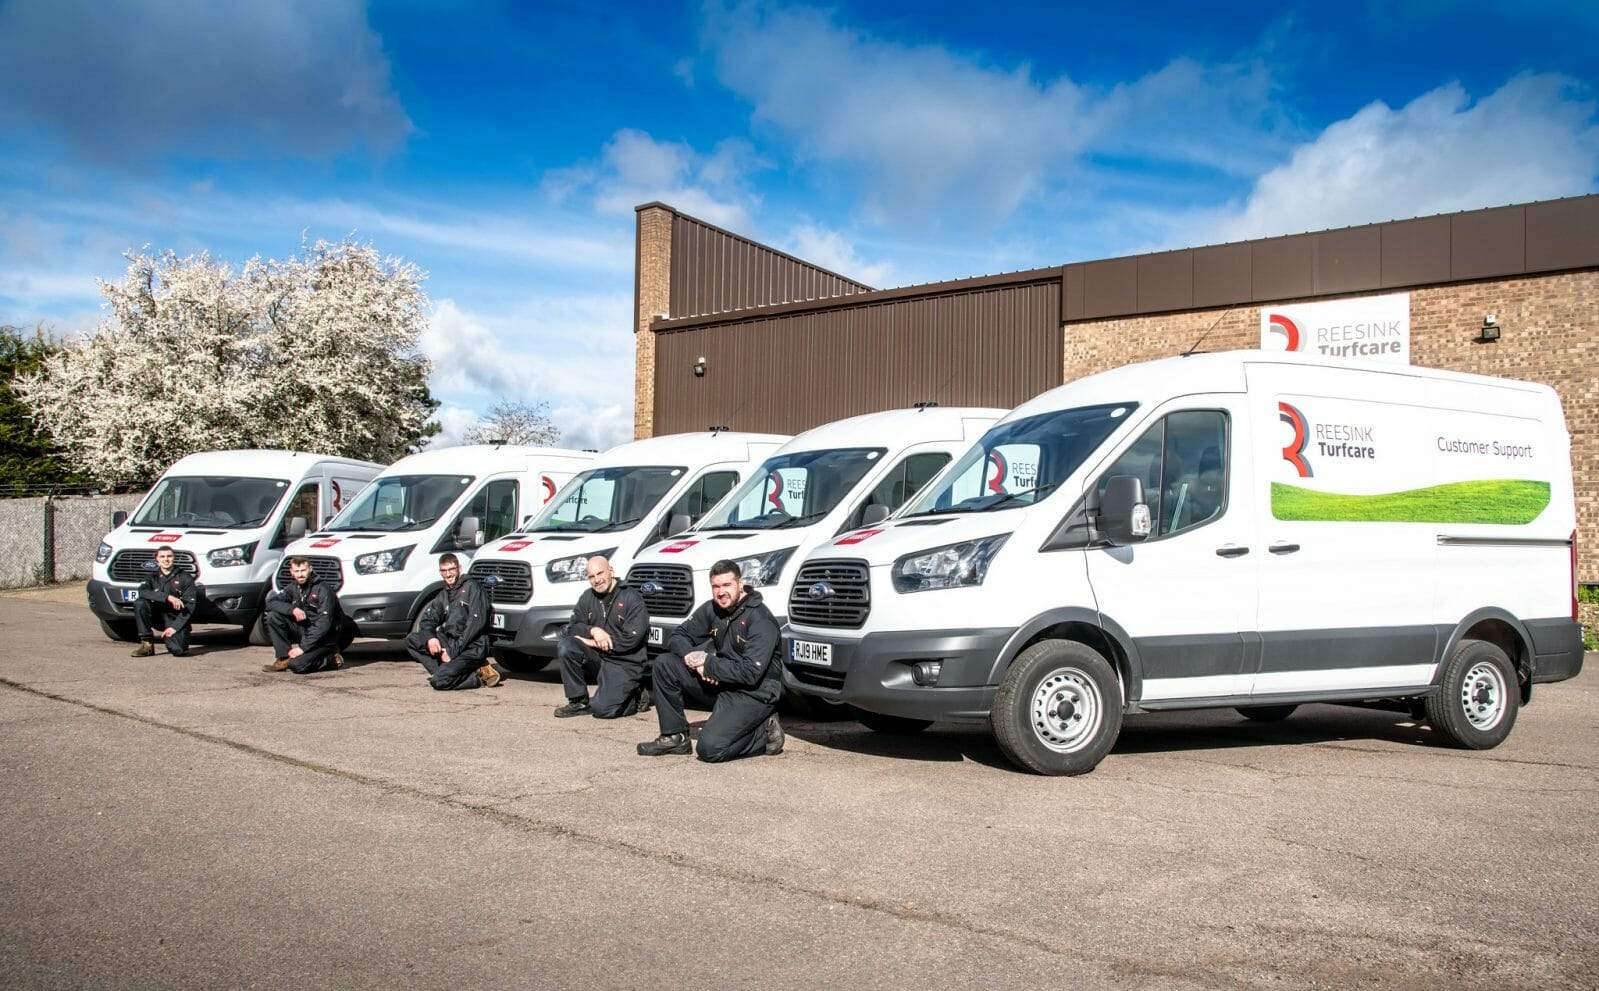 4d75dc7855 GROWTH SEES REESINK TURFCARE INVEST IN FLEET OF VANS TO EXPAND CUSTOMER  SERVICE OFFERING